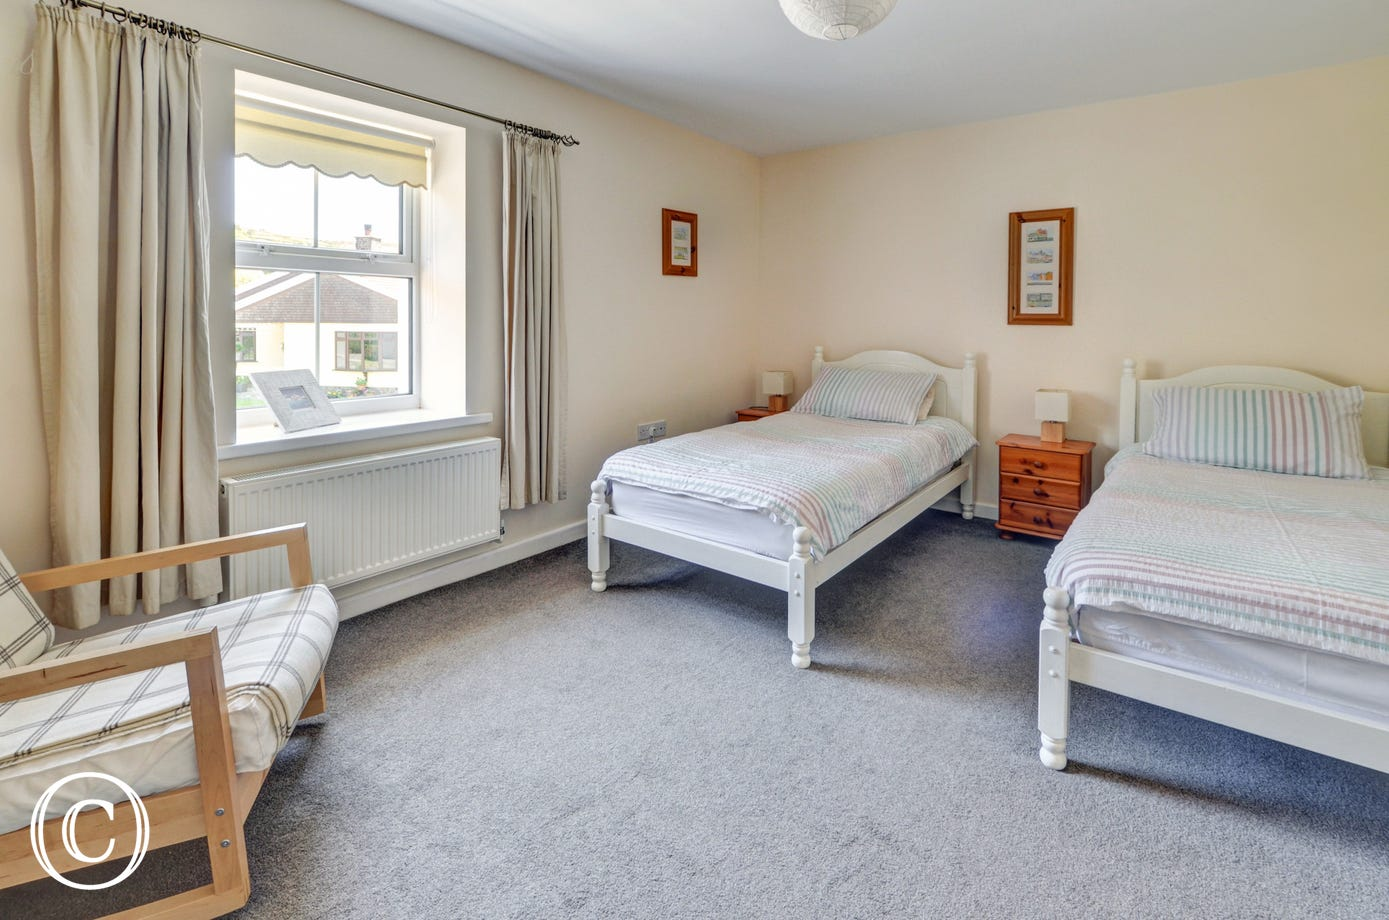 The twin bedroom is spacious and bright